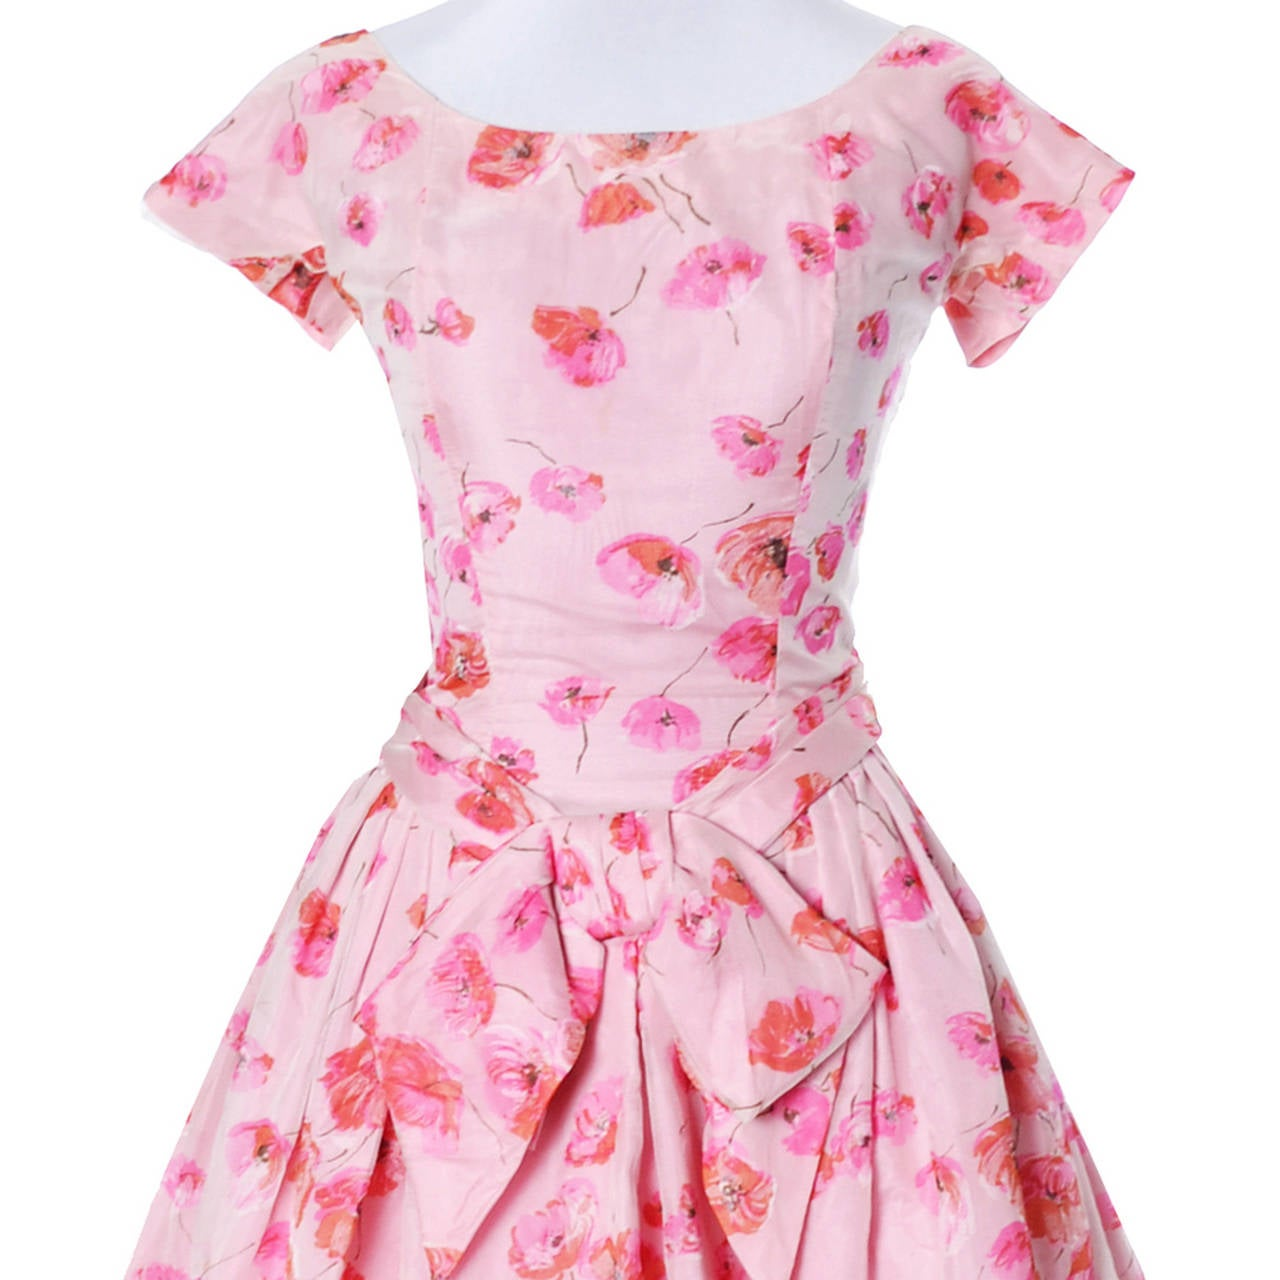 1950s Suzy Perette Vintage Dress Bubble Hem Pink Floral Organza Bow Party Frock In Excellent Condition For Sale In Portland, OR